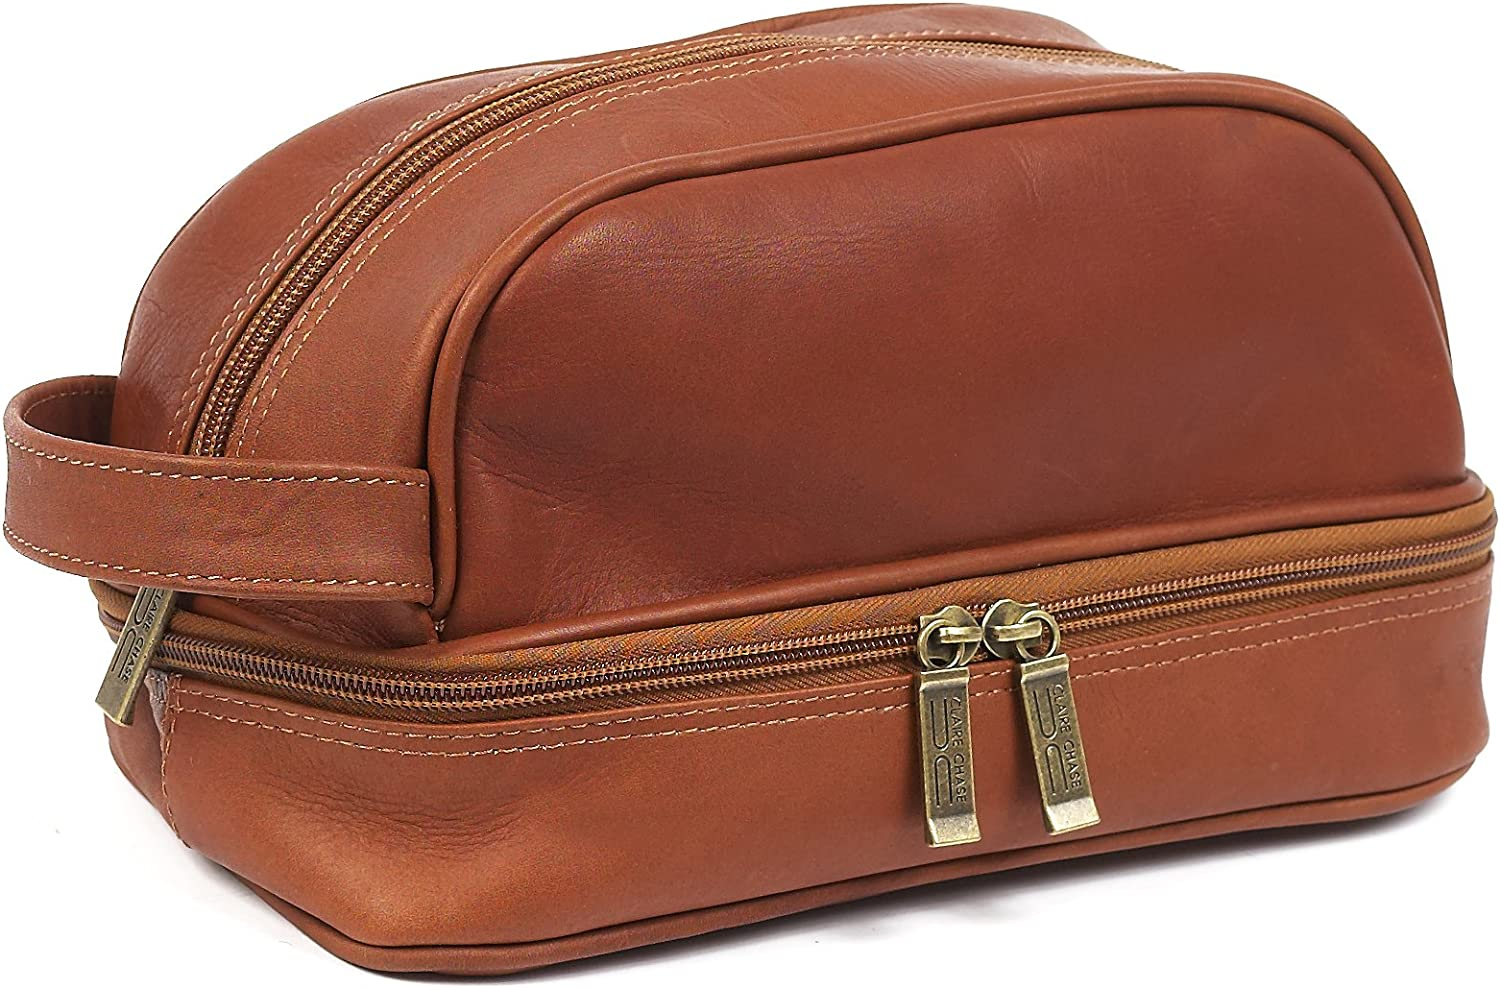 Claire Chase Mediterranean Travel Kit Saddle One Size 775